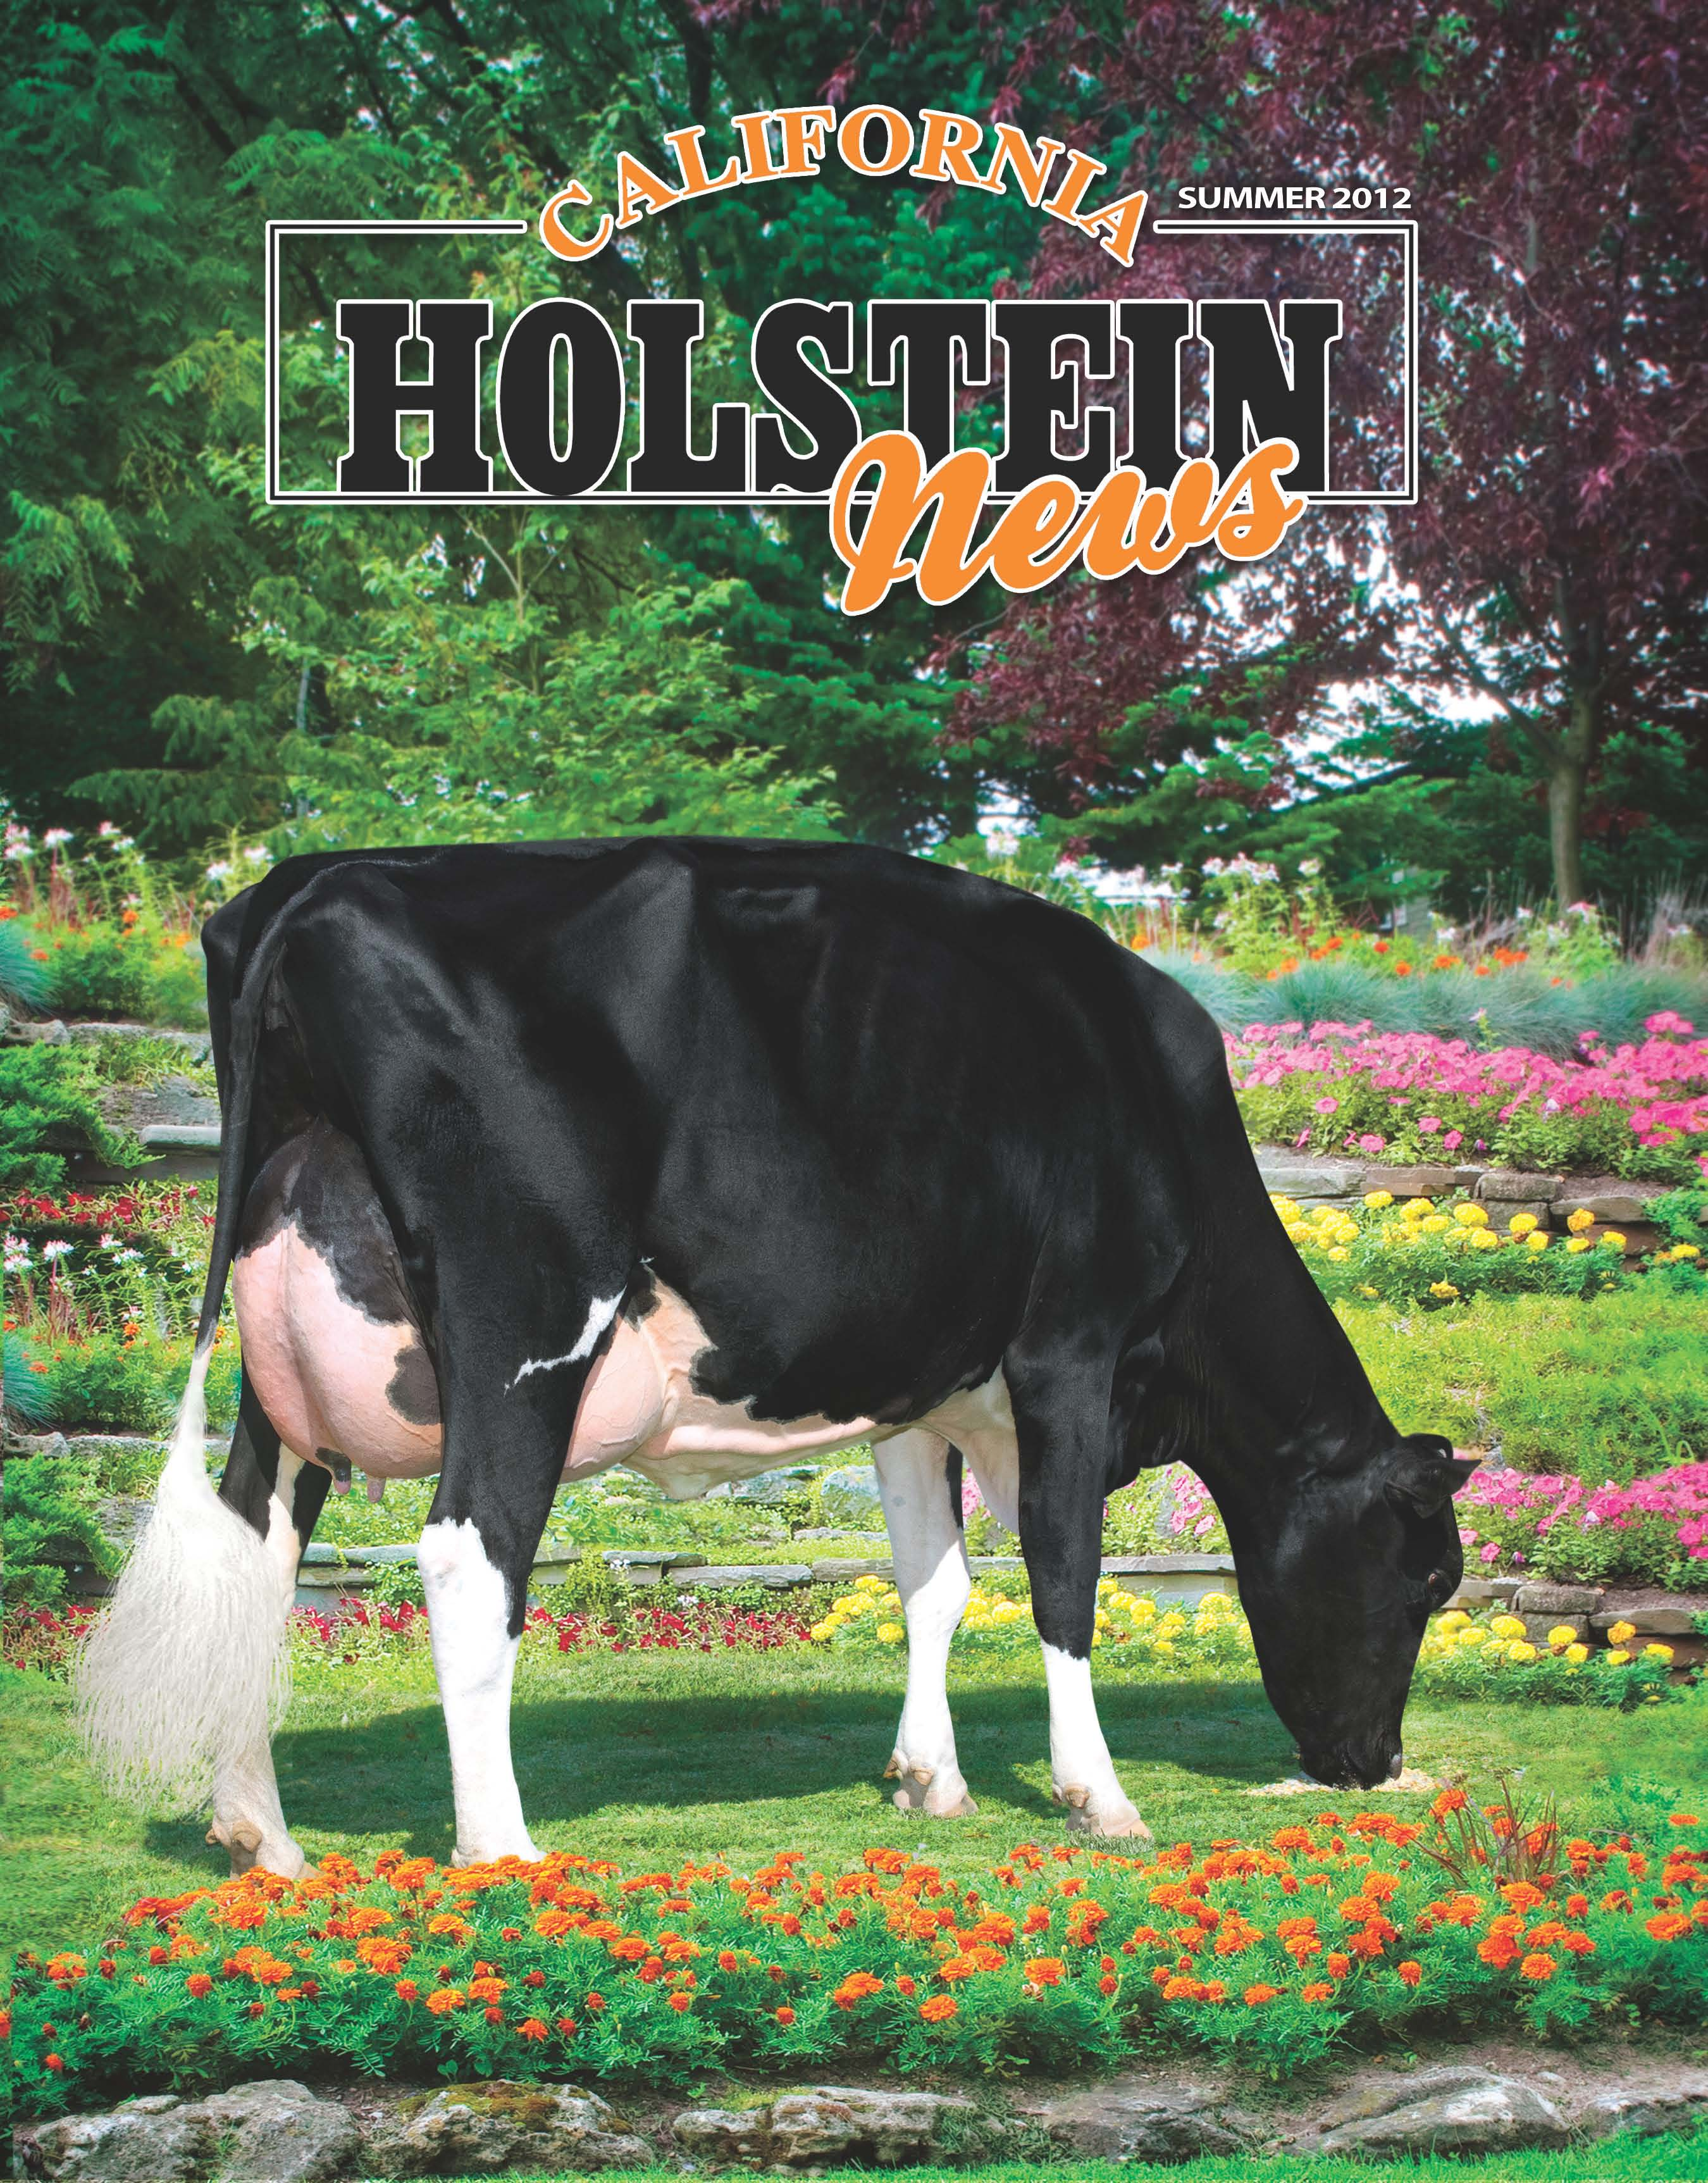 2012 California Holstein News